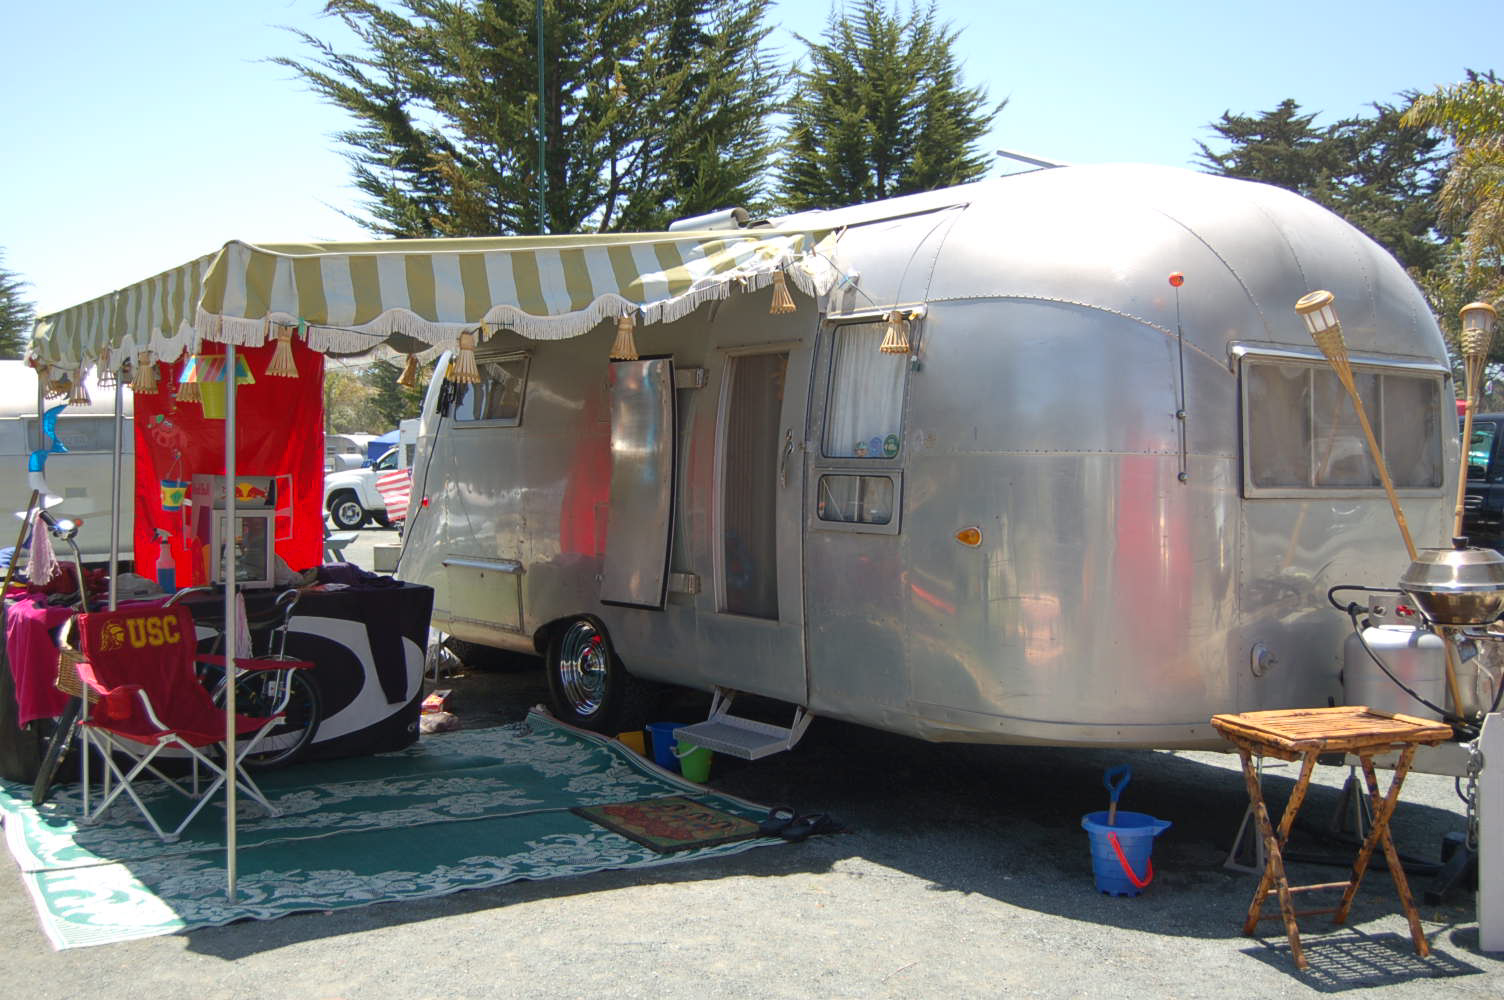 Classic 1957 Airstream Flying Cloud Travel Trailer At Pismo Coastal Village